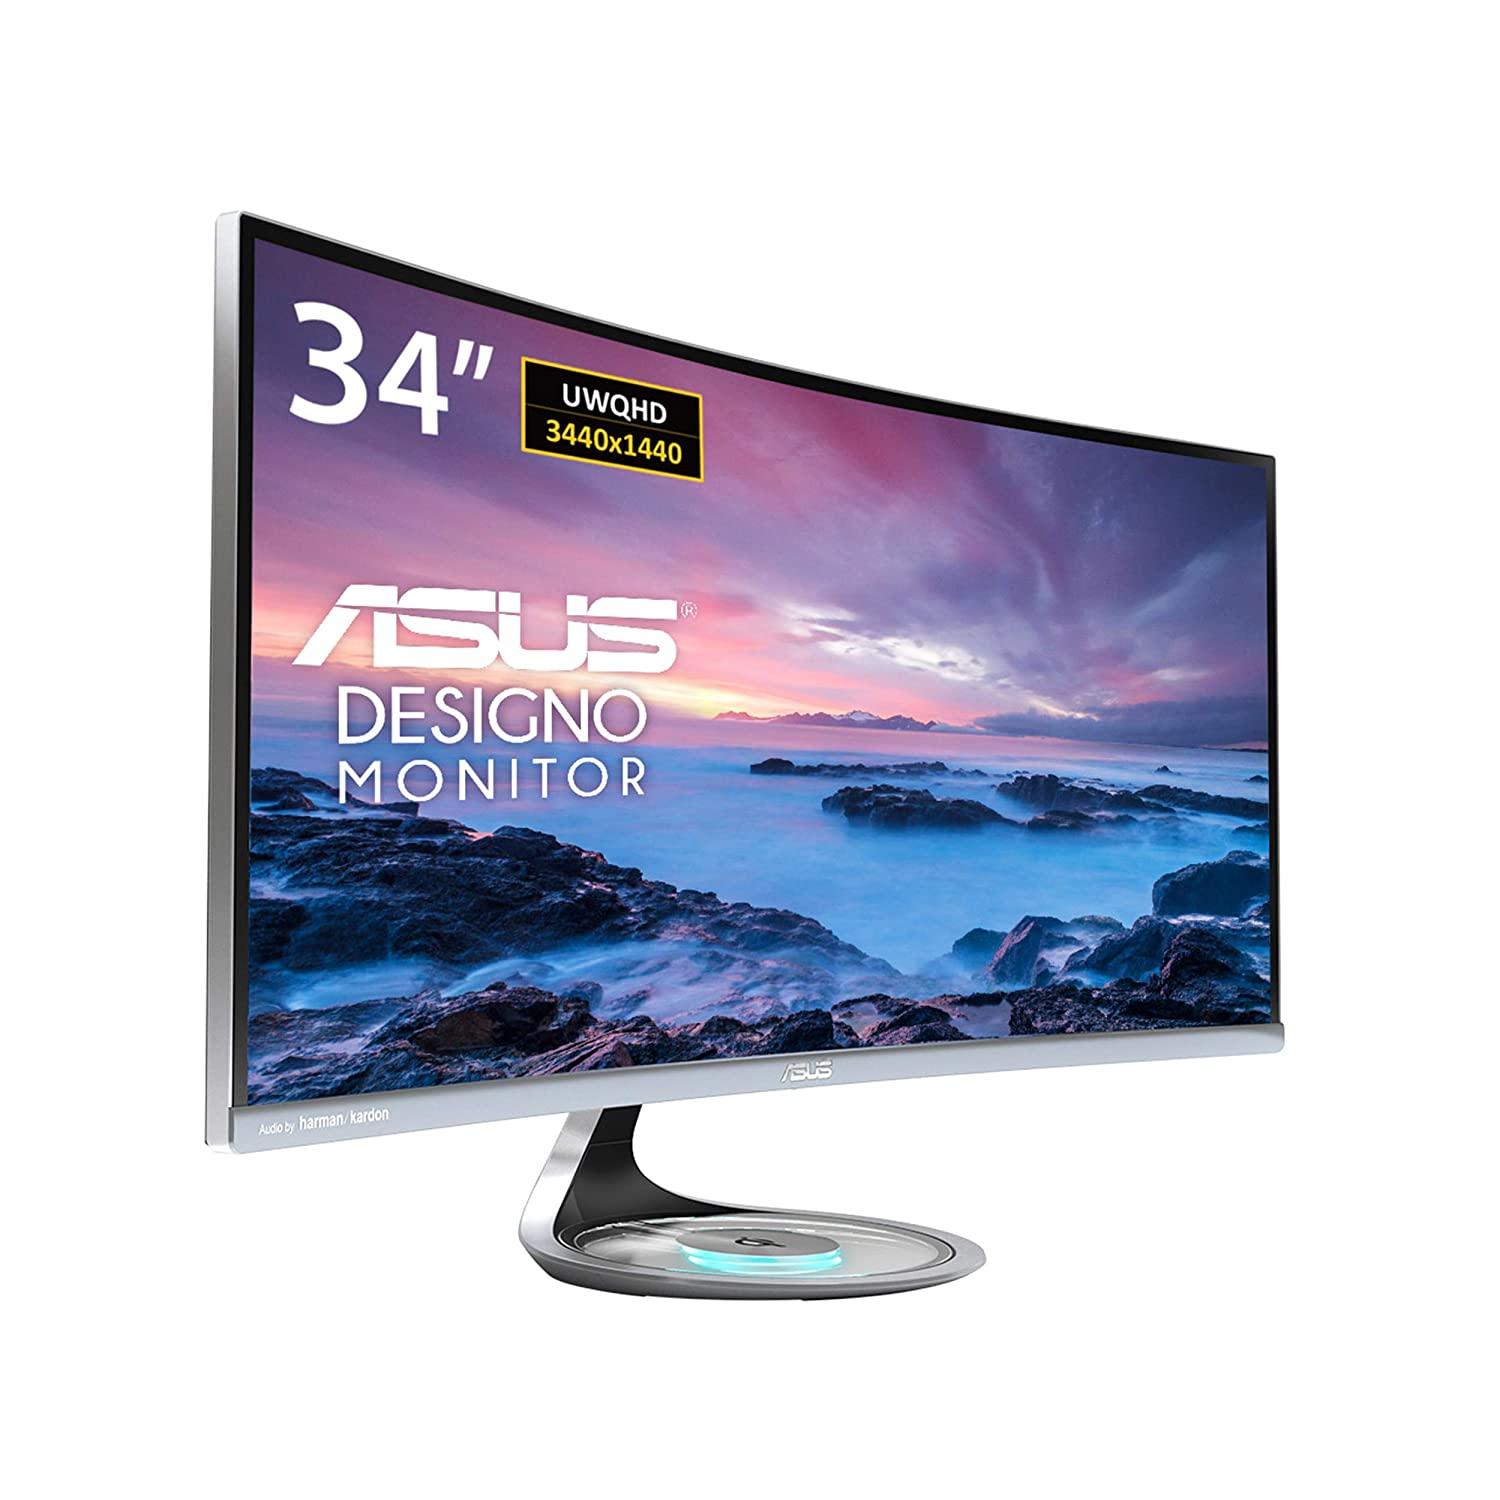 Image result for asus mx34vq